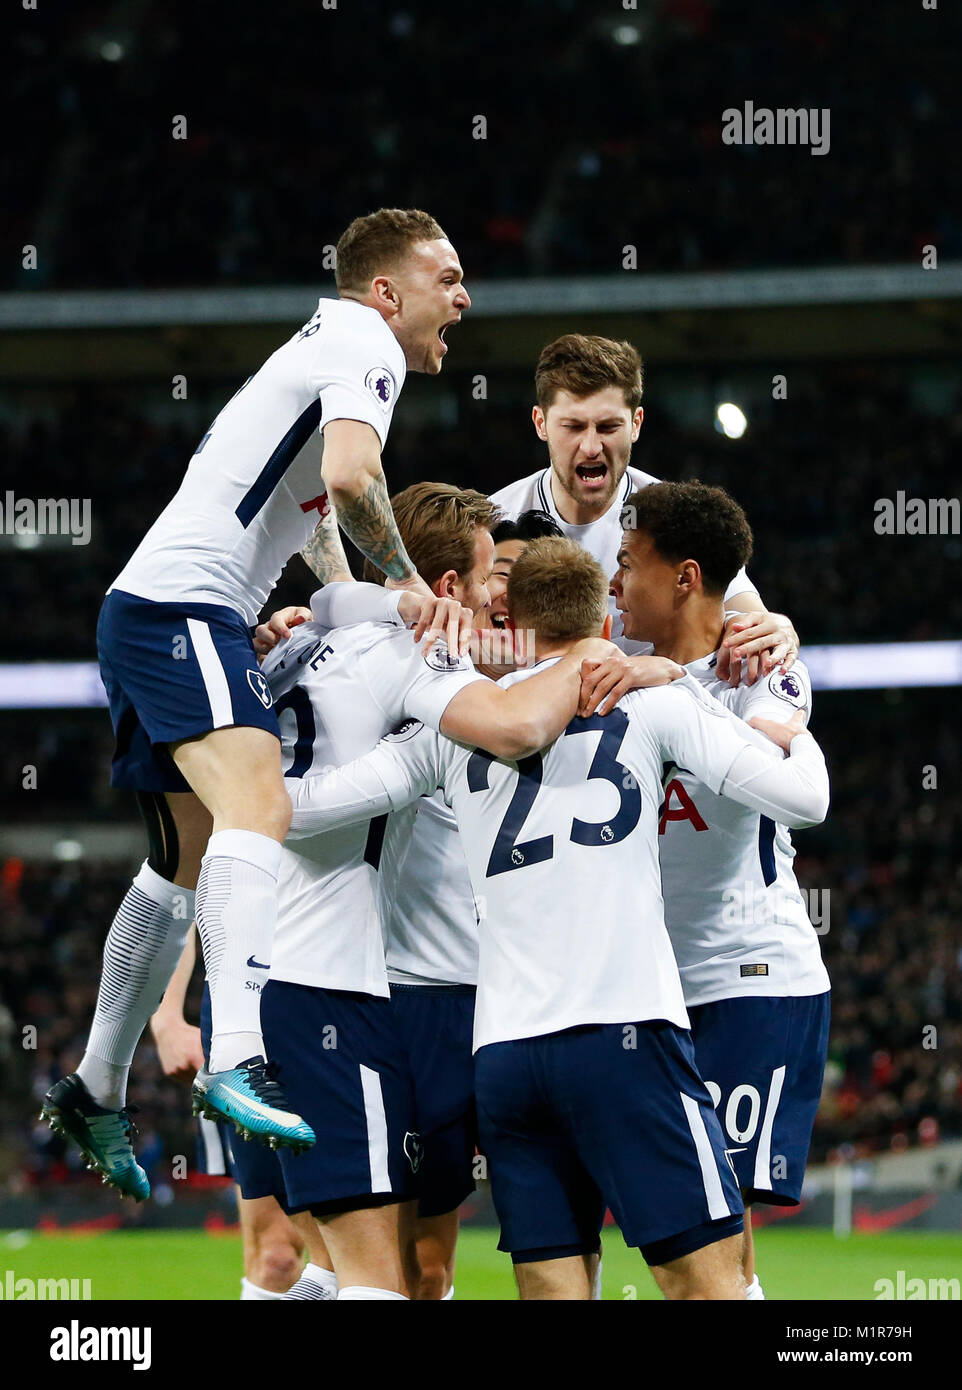 London, UK. 31st Jan, 2018. Players of Tottenham Hotspur celebrate after scoring during the English Premier League Stock Photo